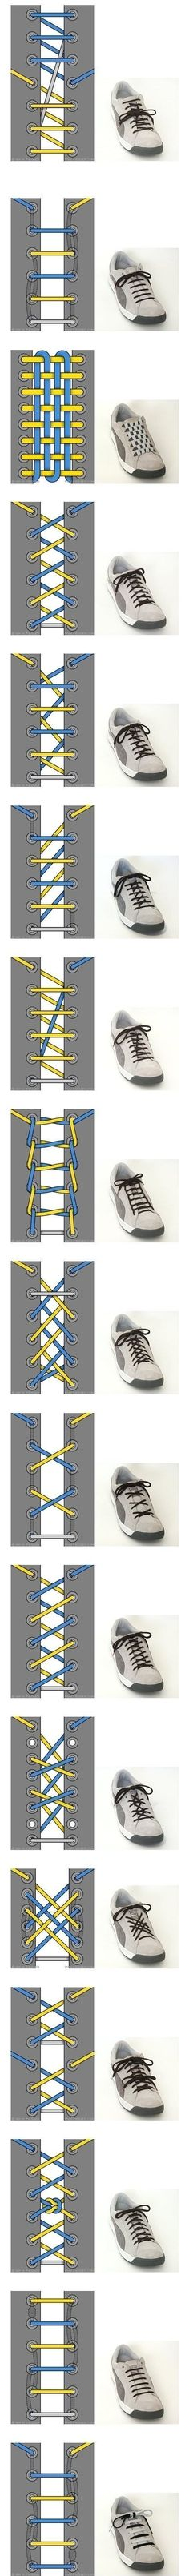 17 ways to tie shoe laces - funny pictures - funny photos - funny images - funny pics - funny quotes - #lol #humor #funny